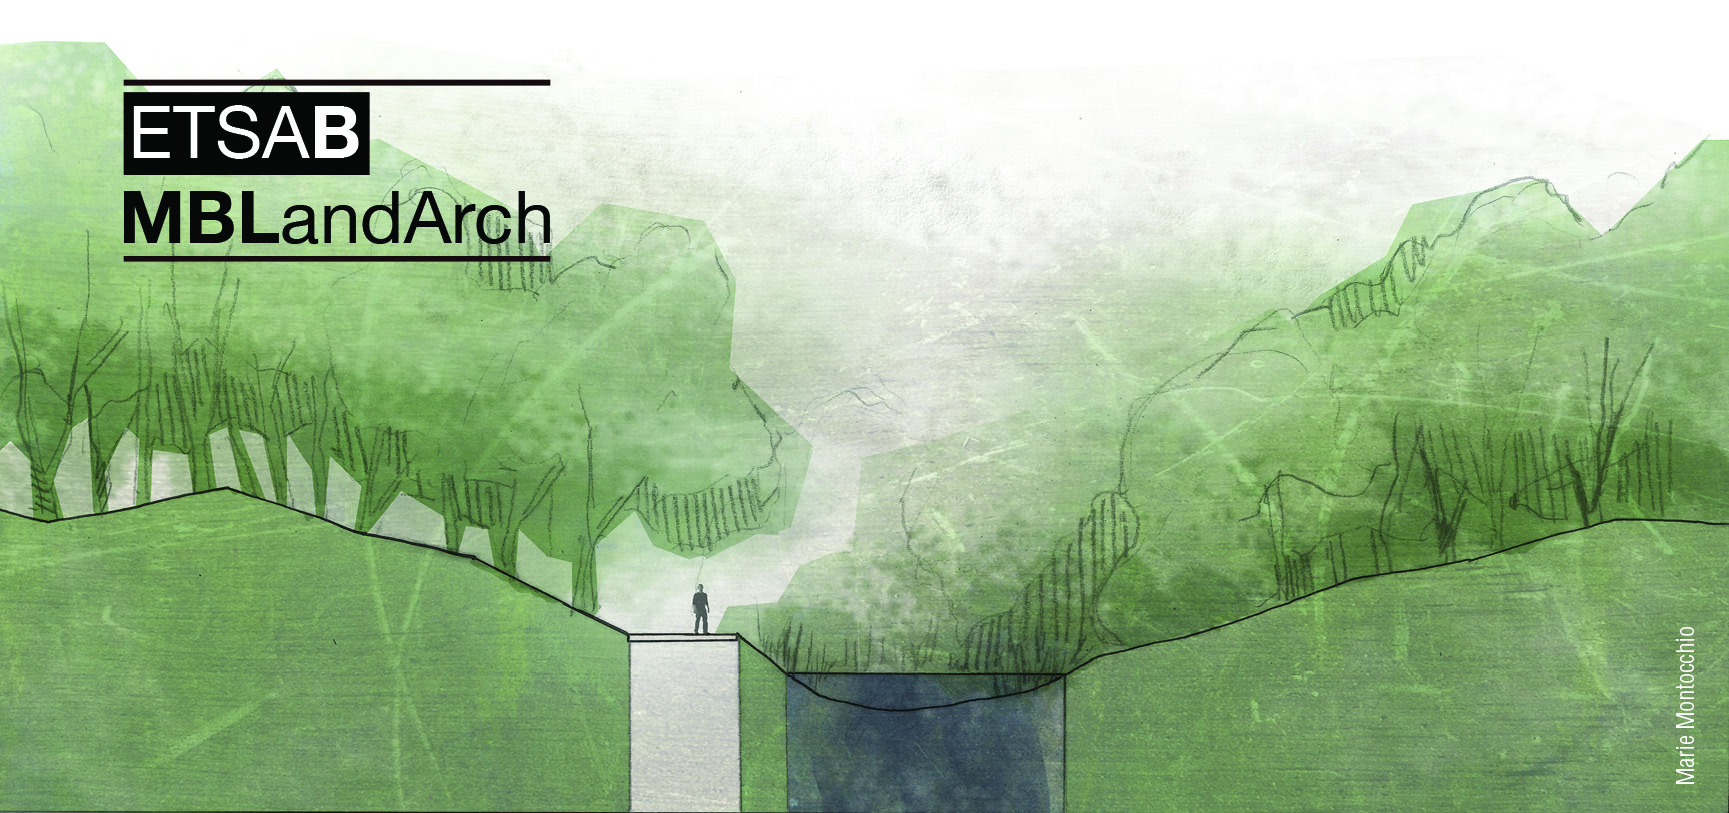 banners_MBLandArch5.jpg